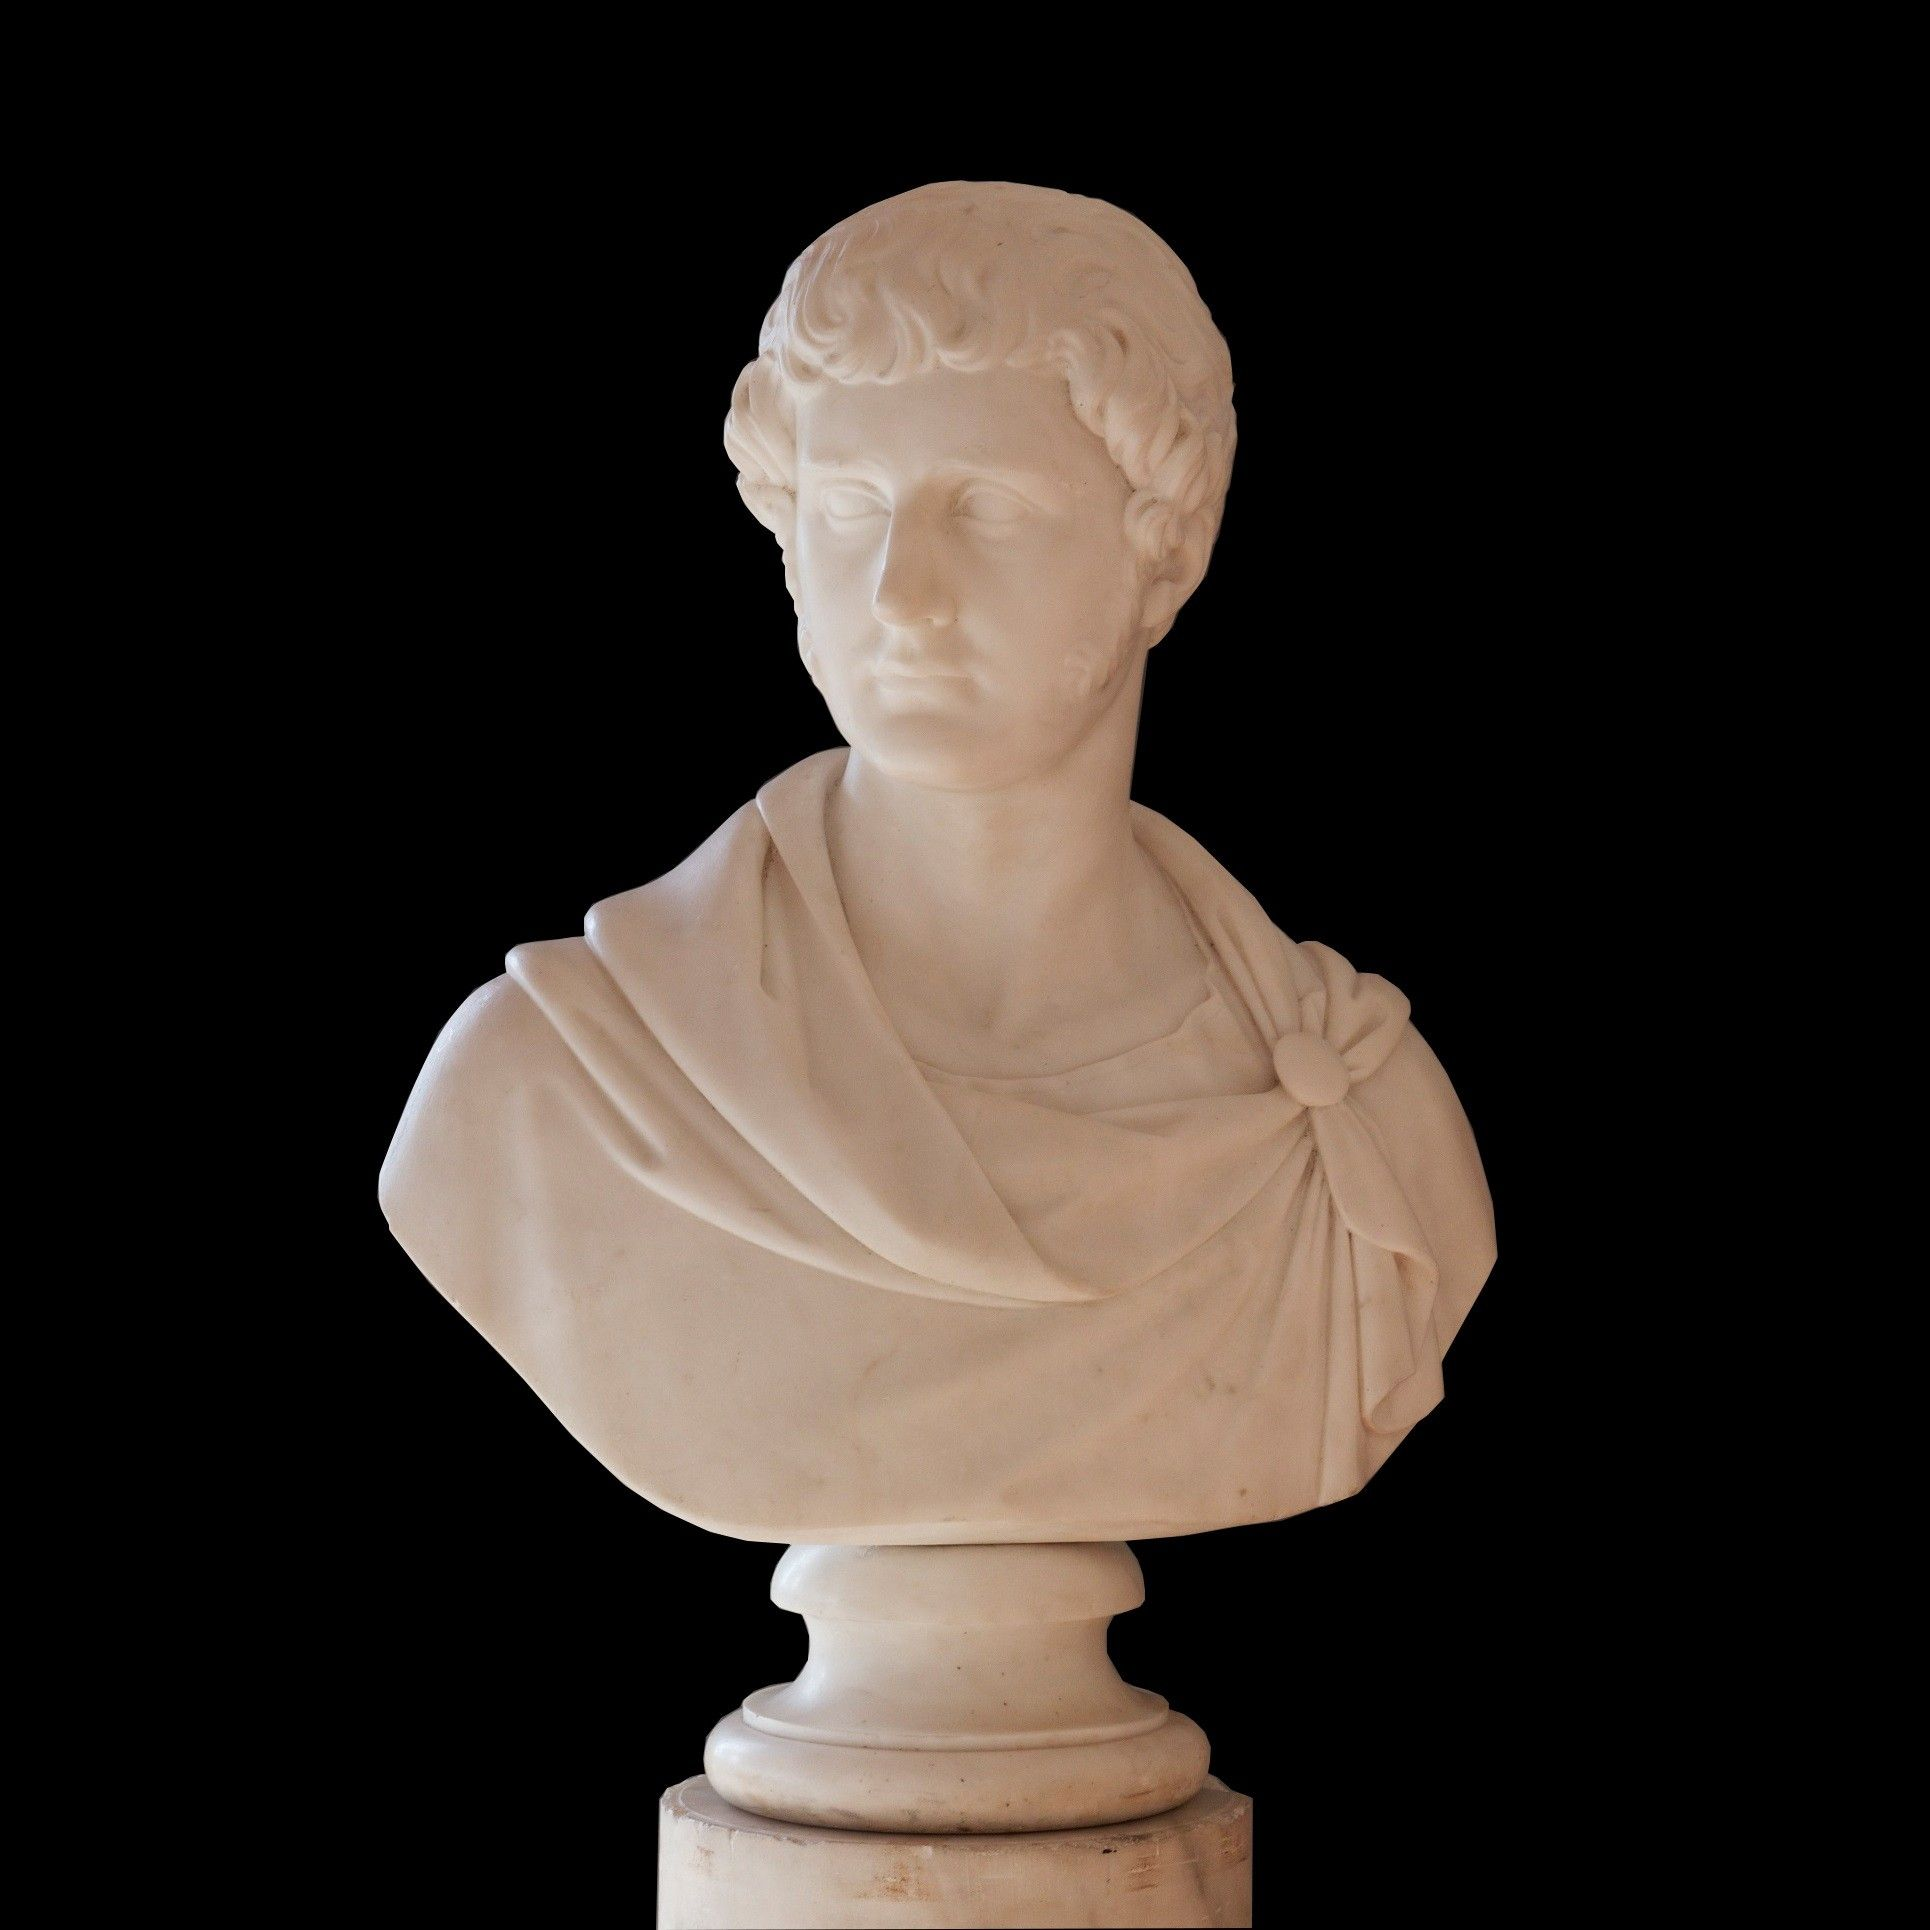 A MARBLE PORTRAIT BUST By Thomas Campbell (1790-1858) Rome, 1824